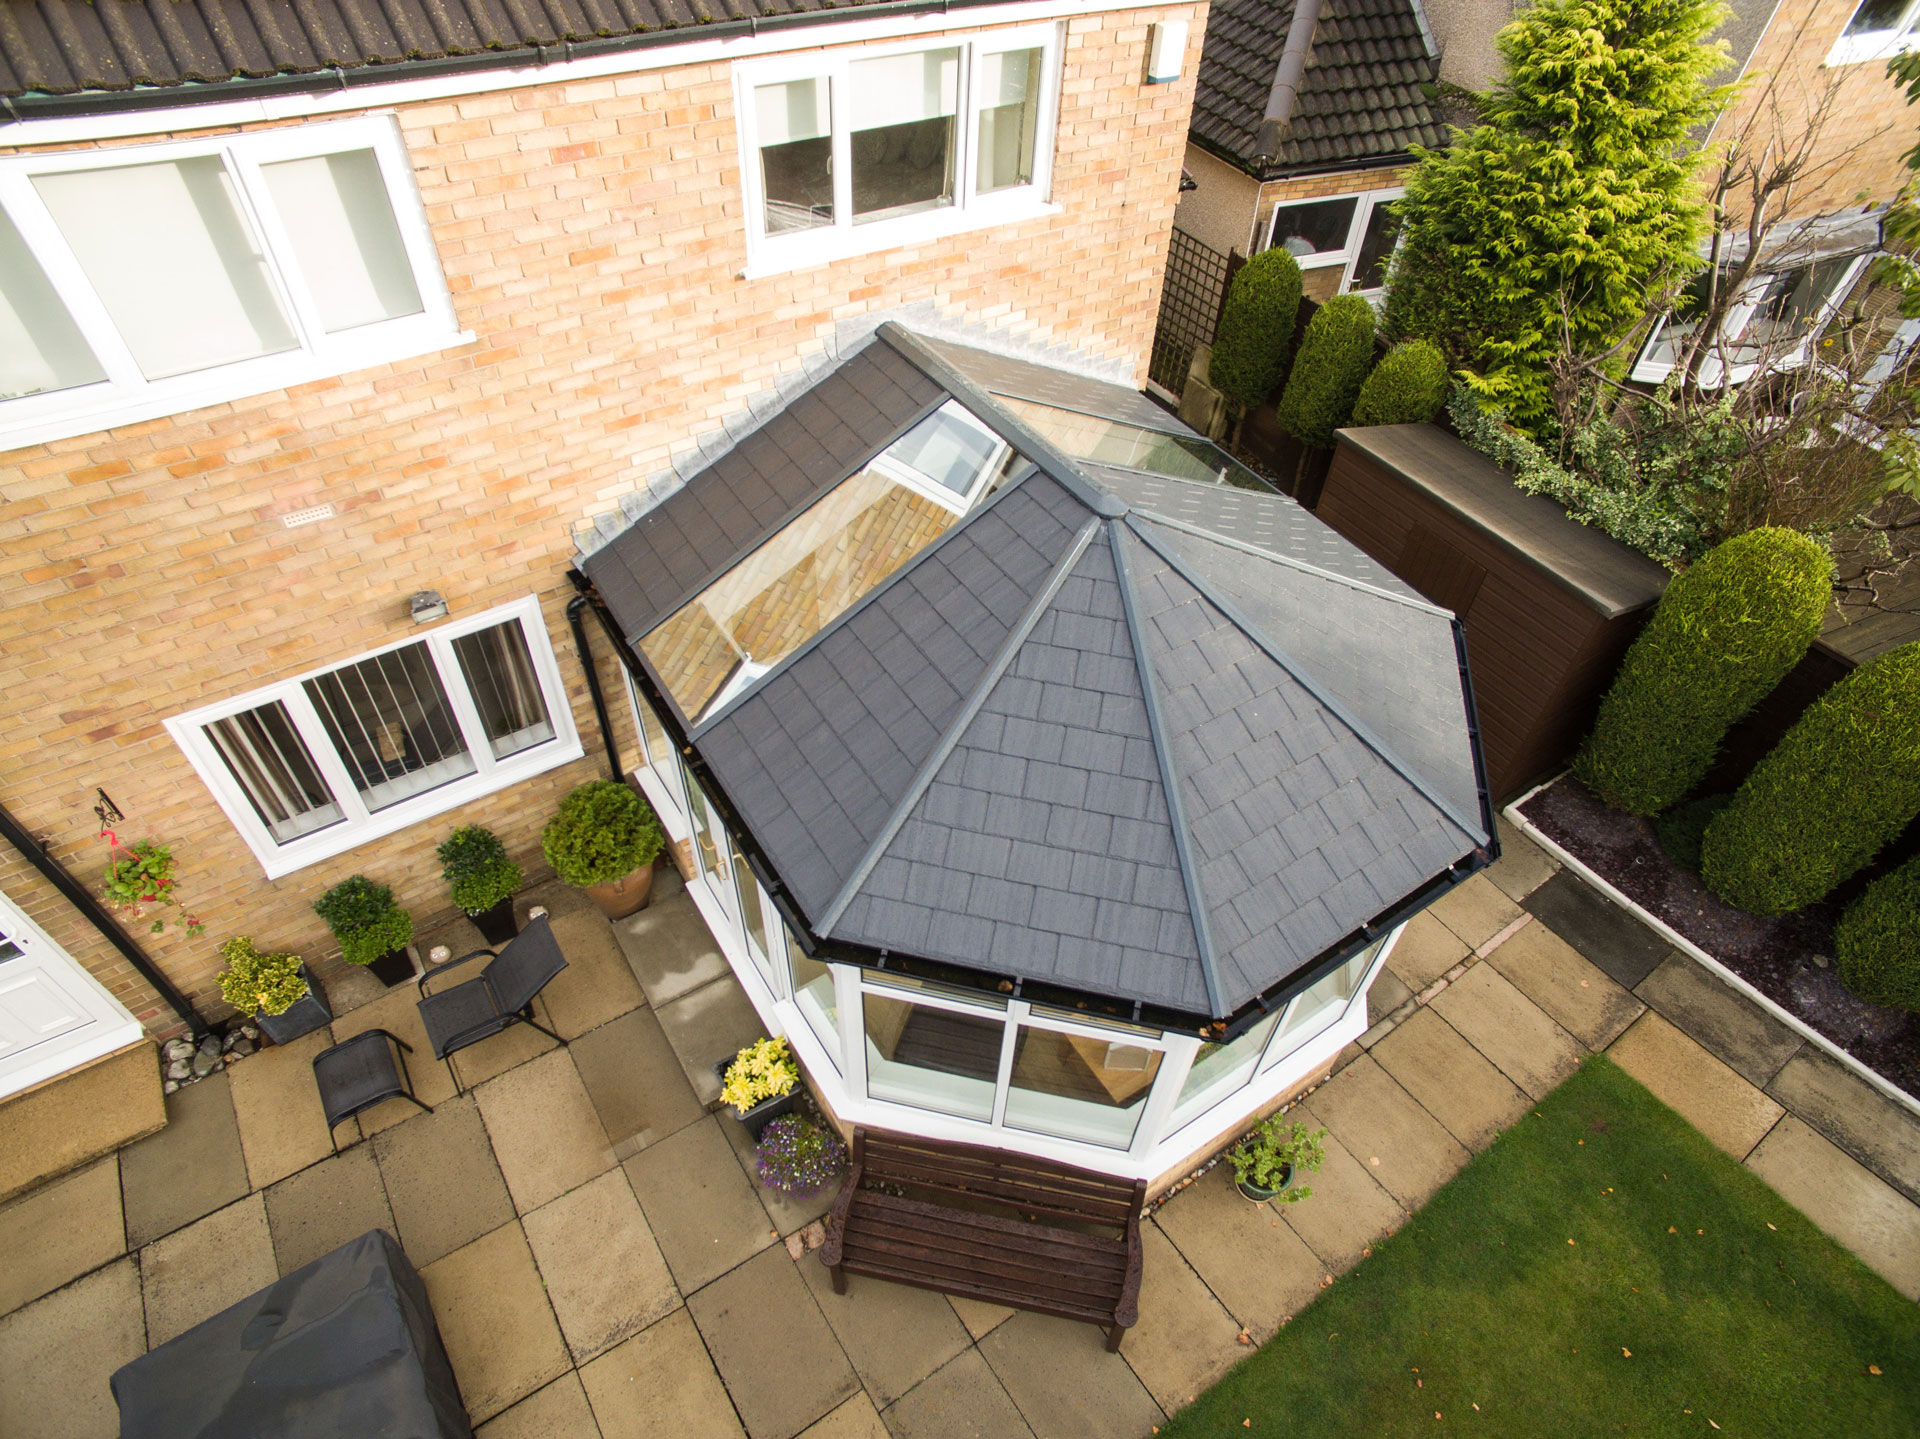 Ultraframe Ultraroof Tiled Conservatory Roof Replacement Stevenage